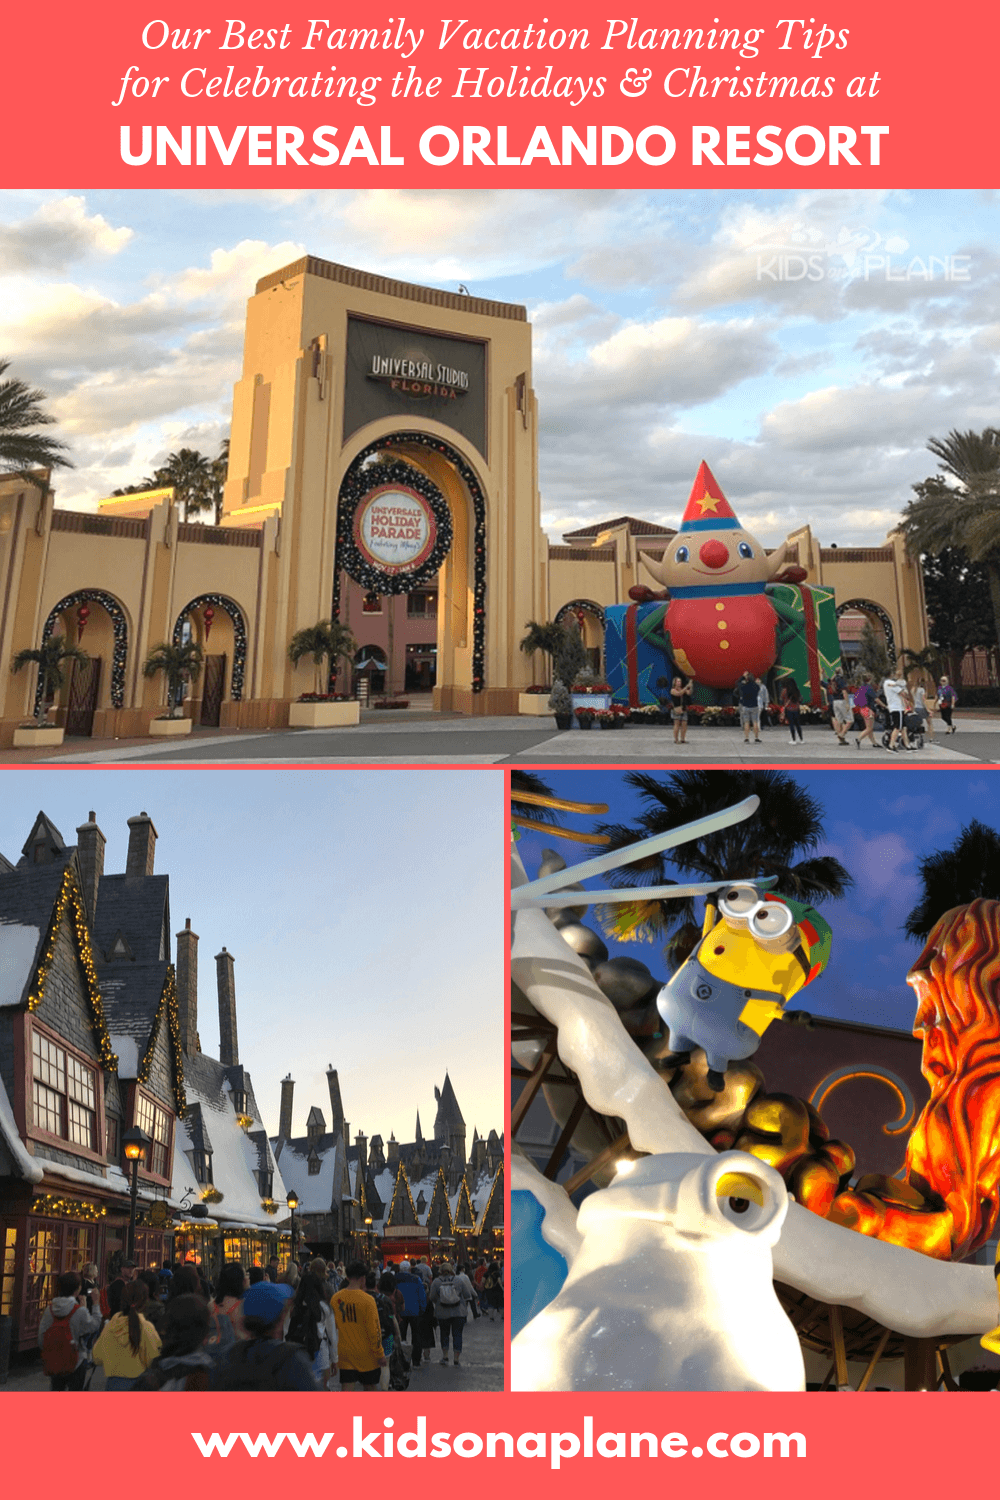 Money Time and Sanity Saving Tips for Celebrating Christmas and the Holidays at Universal Orlando